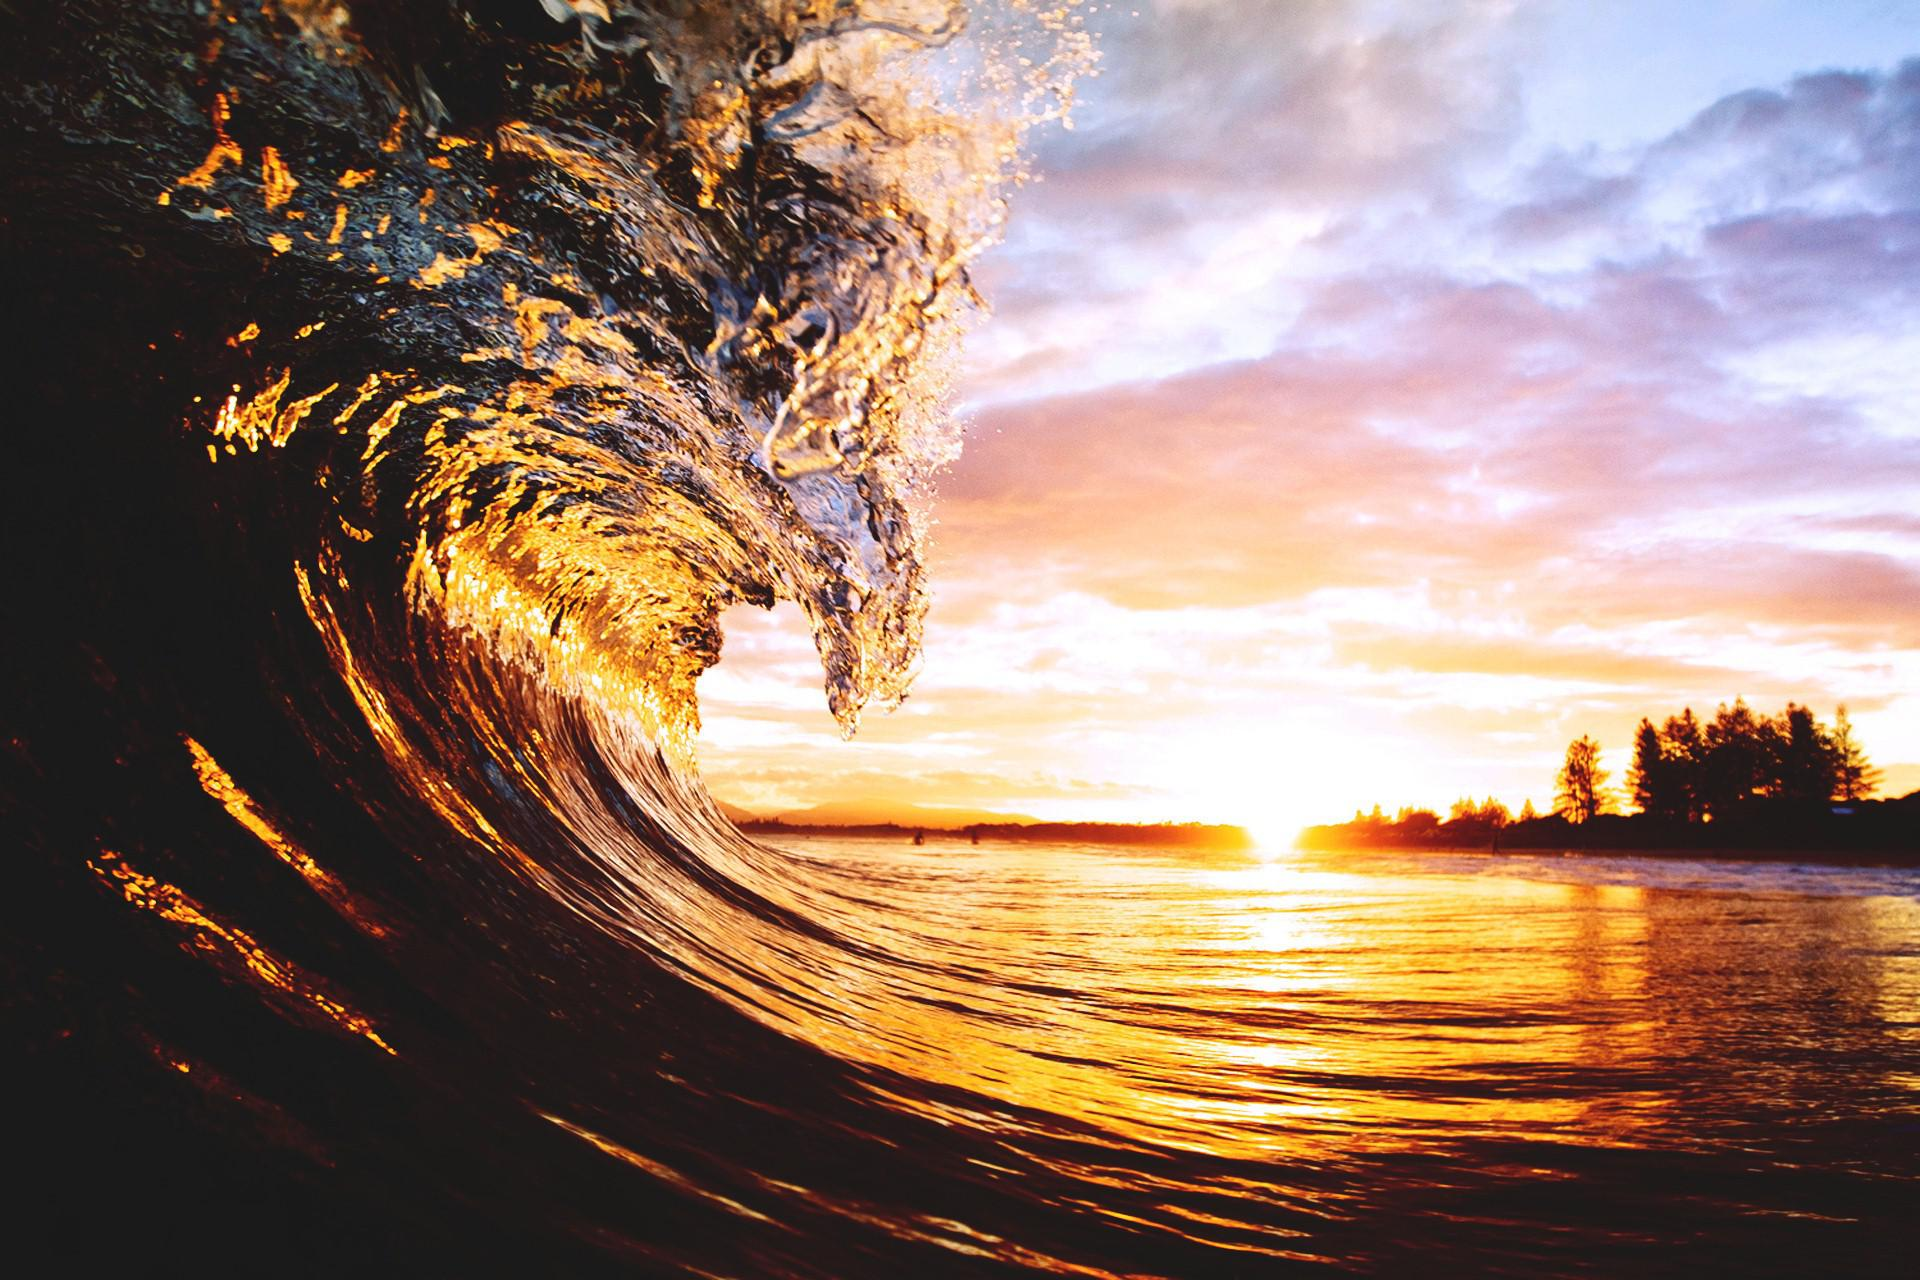 Best 3d Moving Wallpapers For Desktop Hd Beach Waves Wallpaper Download Free 140487